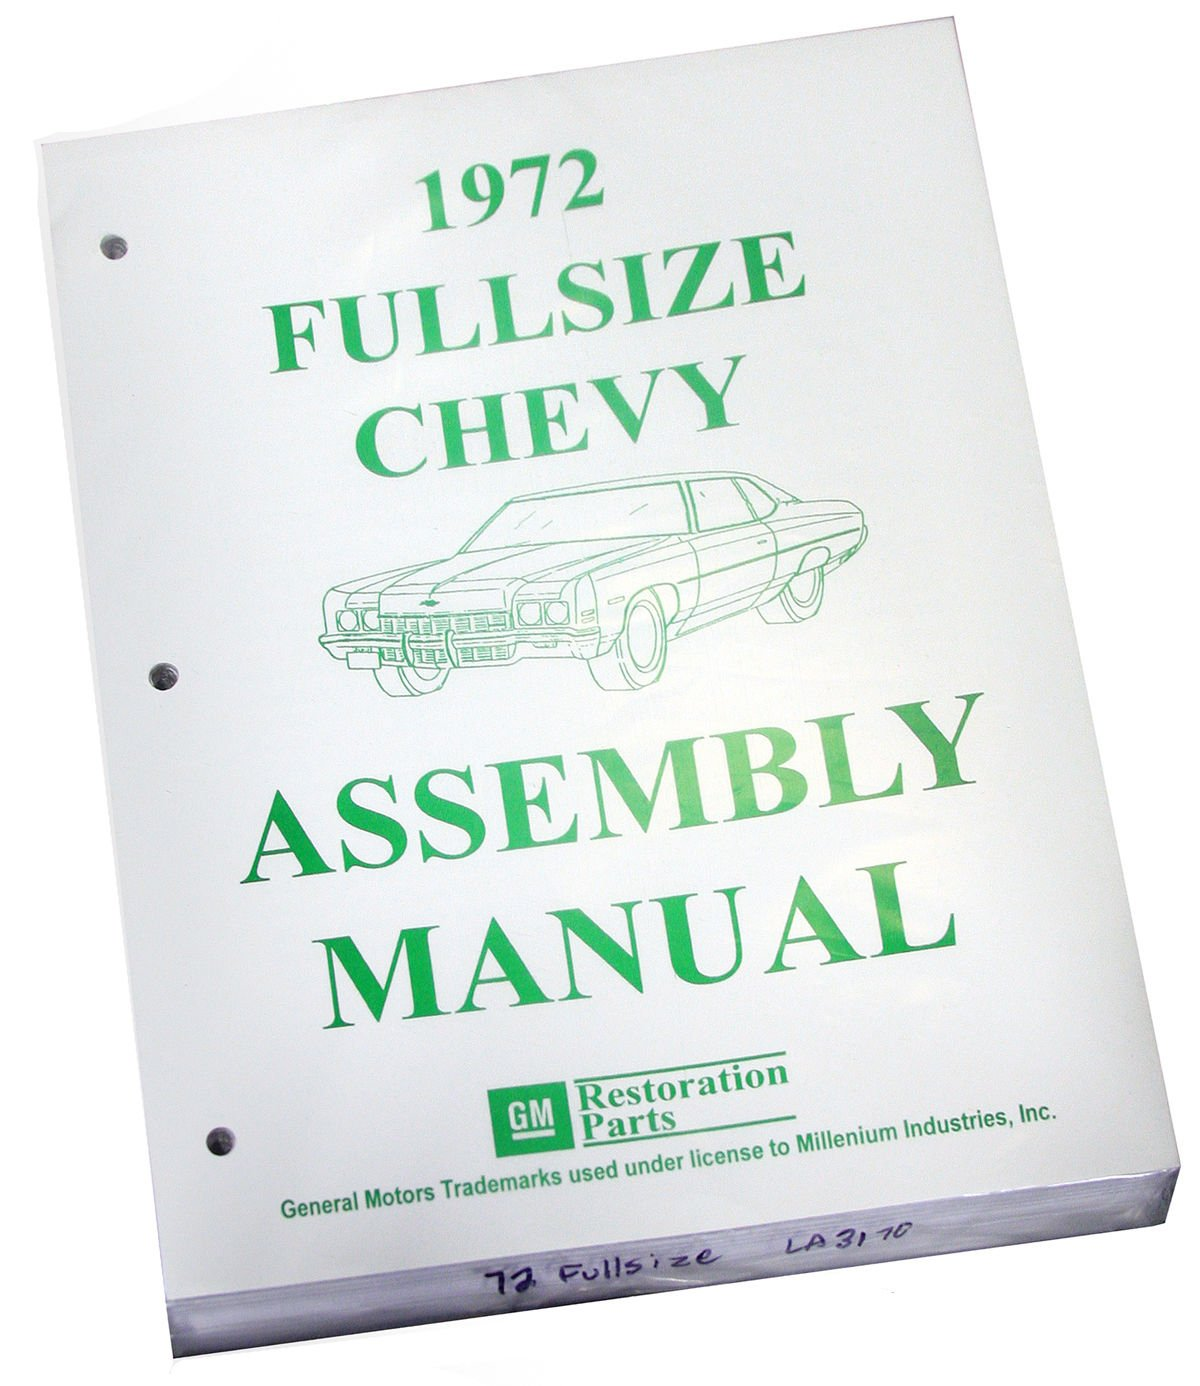 Inline Tube (I-2-12) Factory Assembly Manual for 1972 Chevrolet Full Size Cars Bel Air and Impala